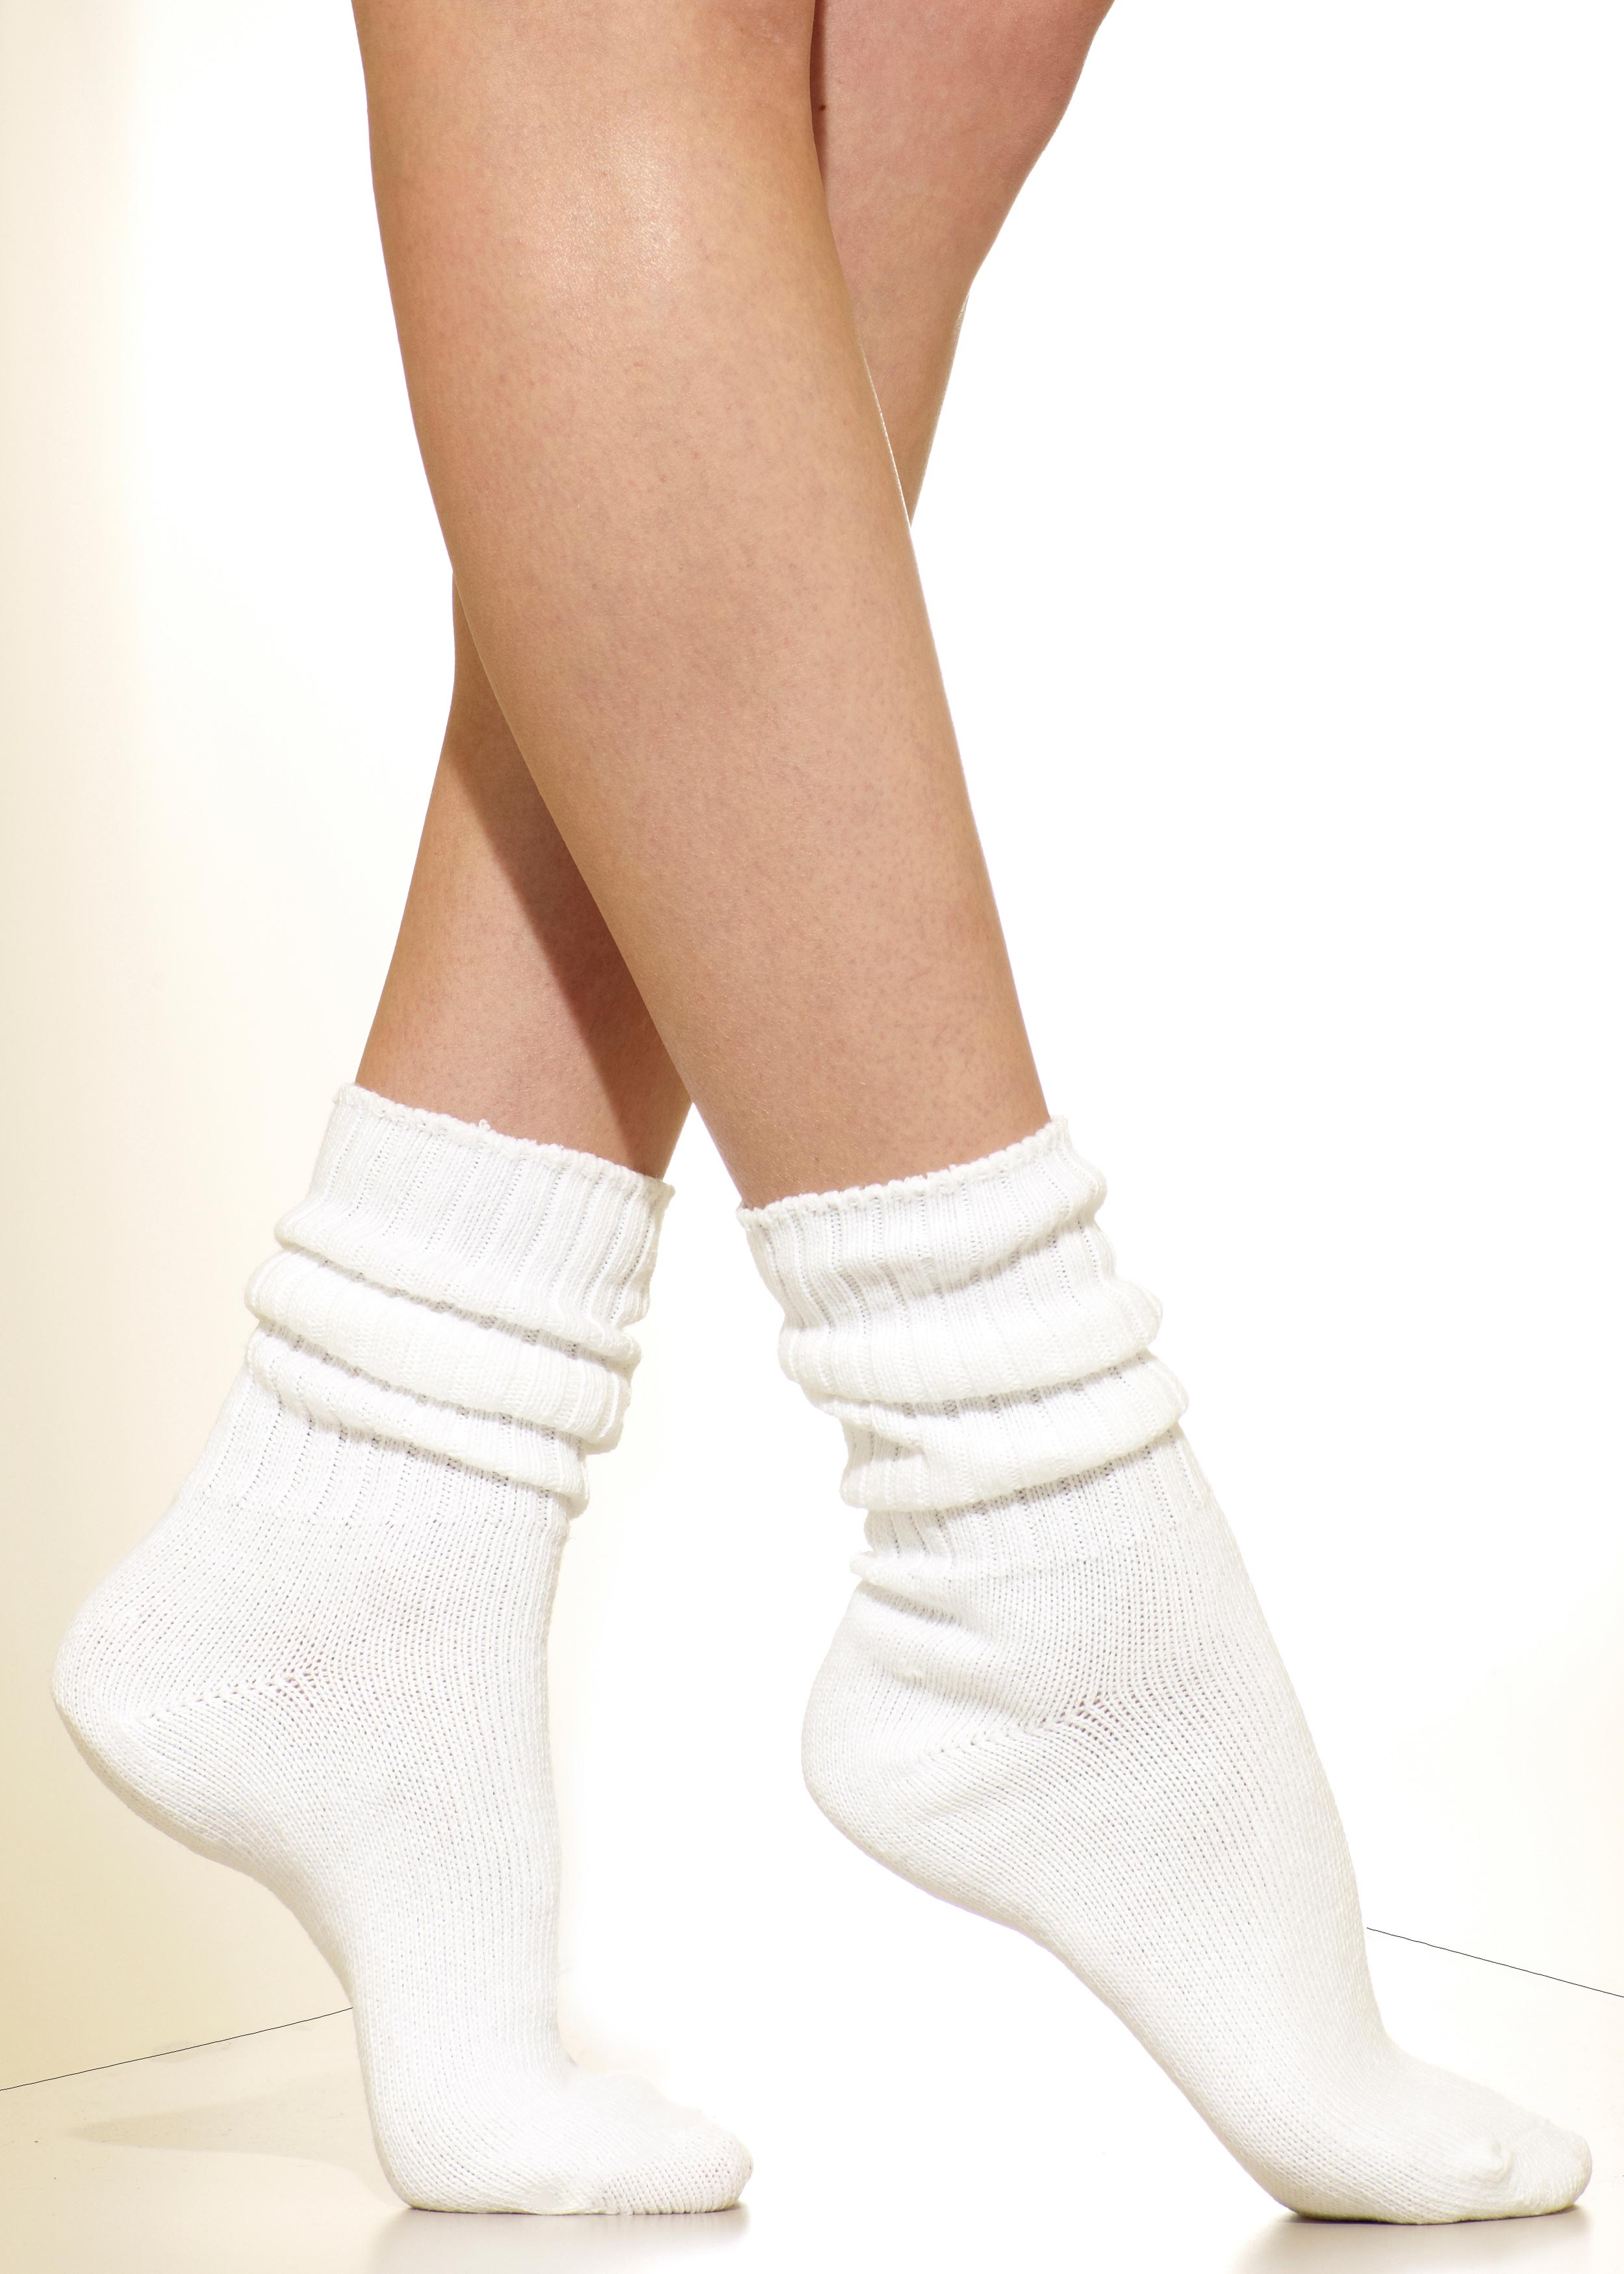 5804fe024 Silkies Amazing 3-in-1 Socks | Comfy, Cotton-Blend Casual Socks